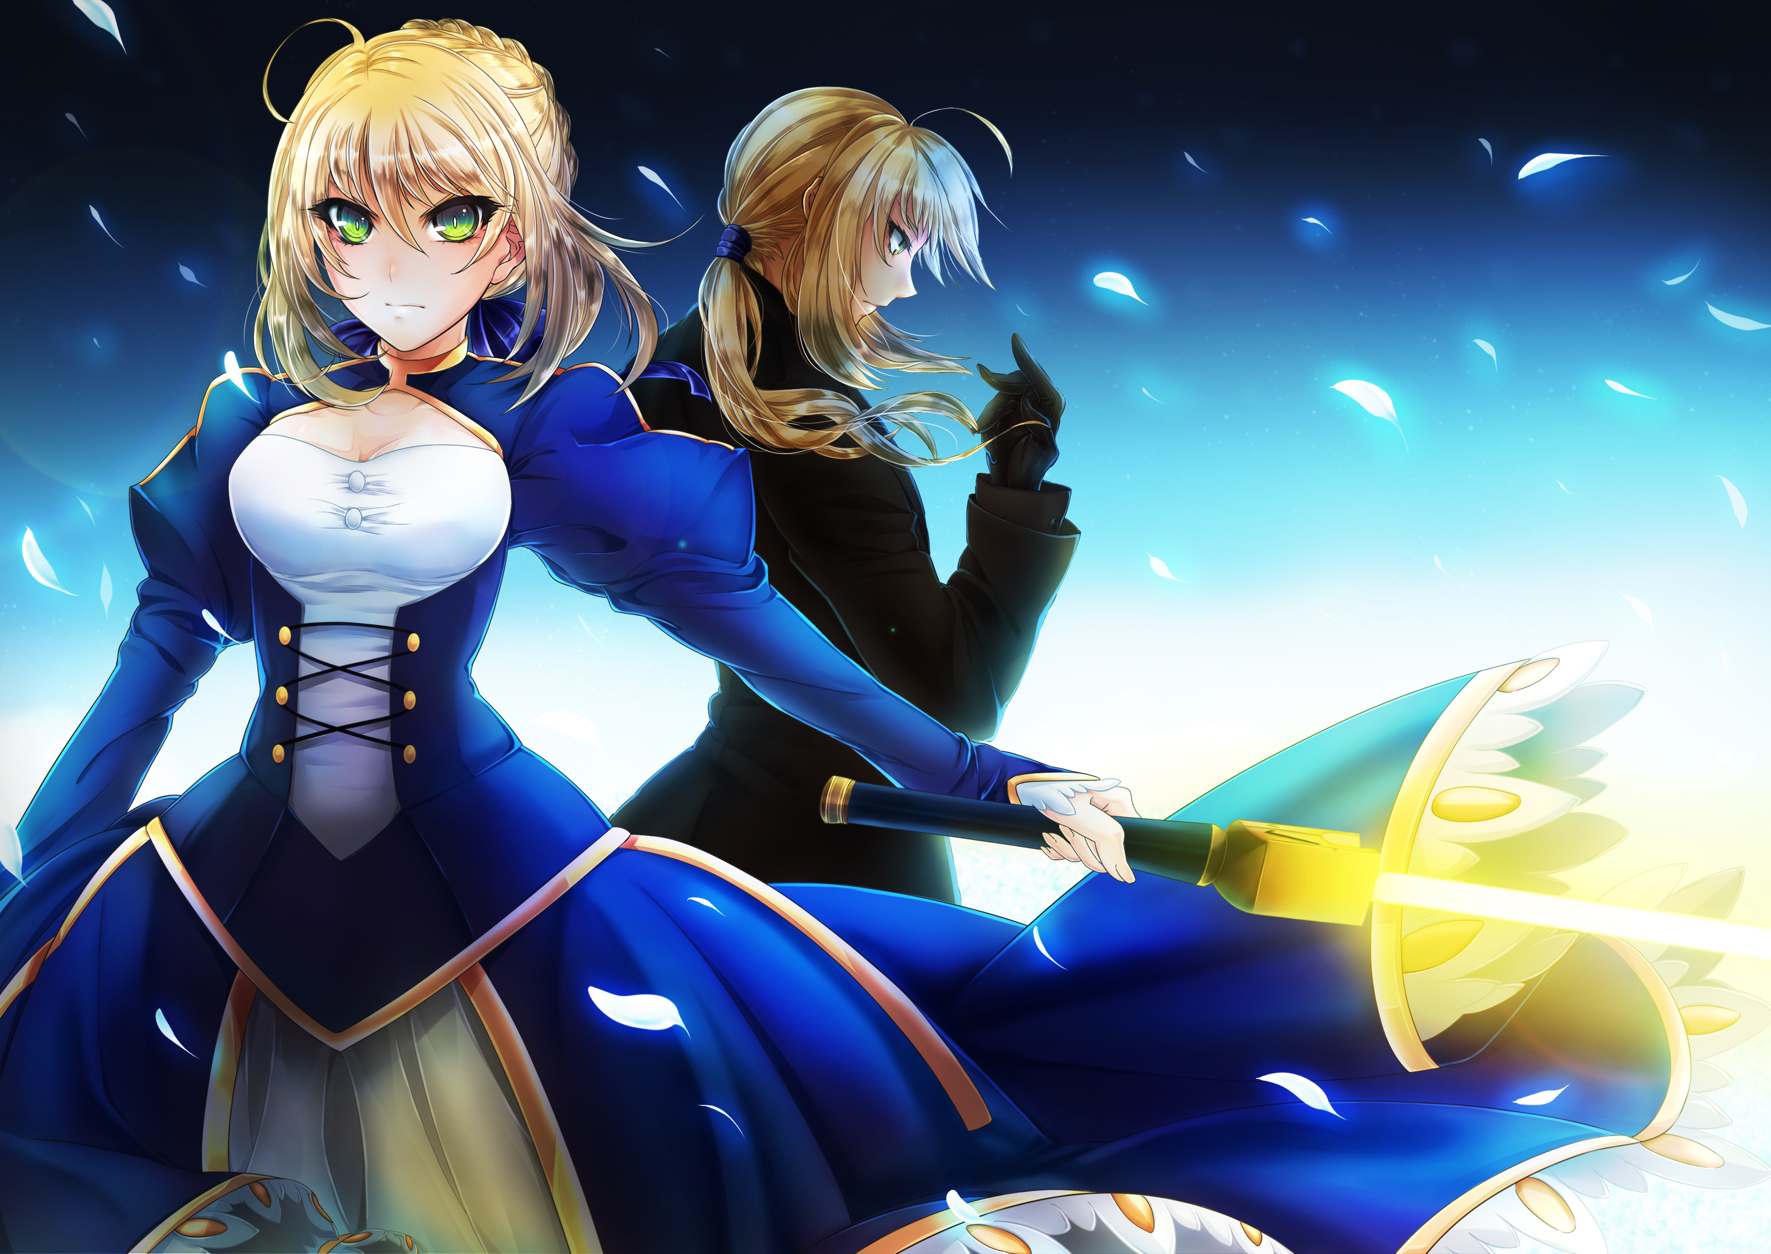 fatestay night fatezero saber konachancom   Konachancom Anime 1771x1254